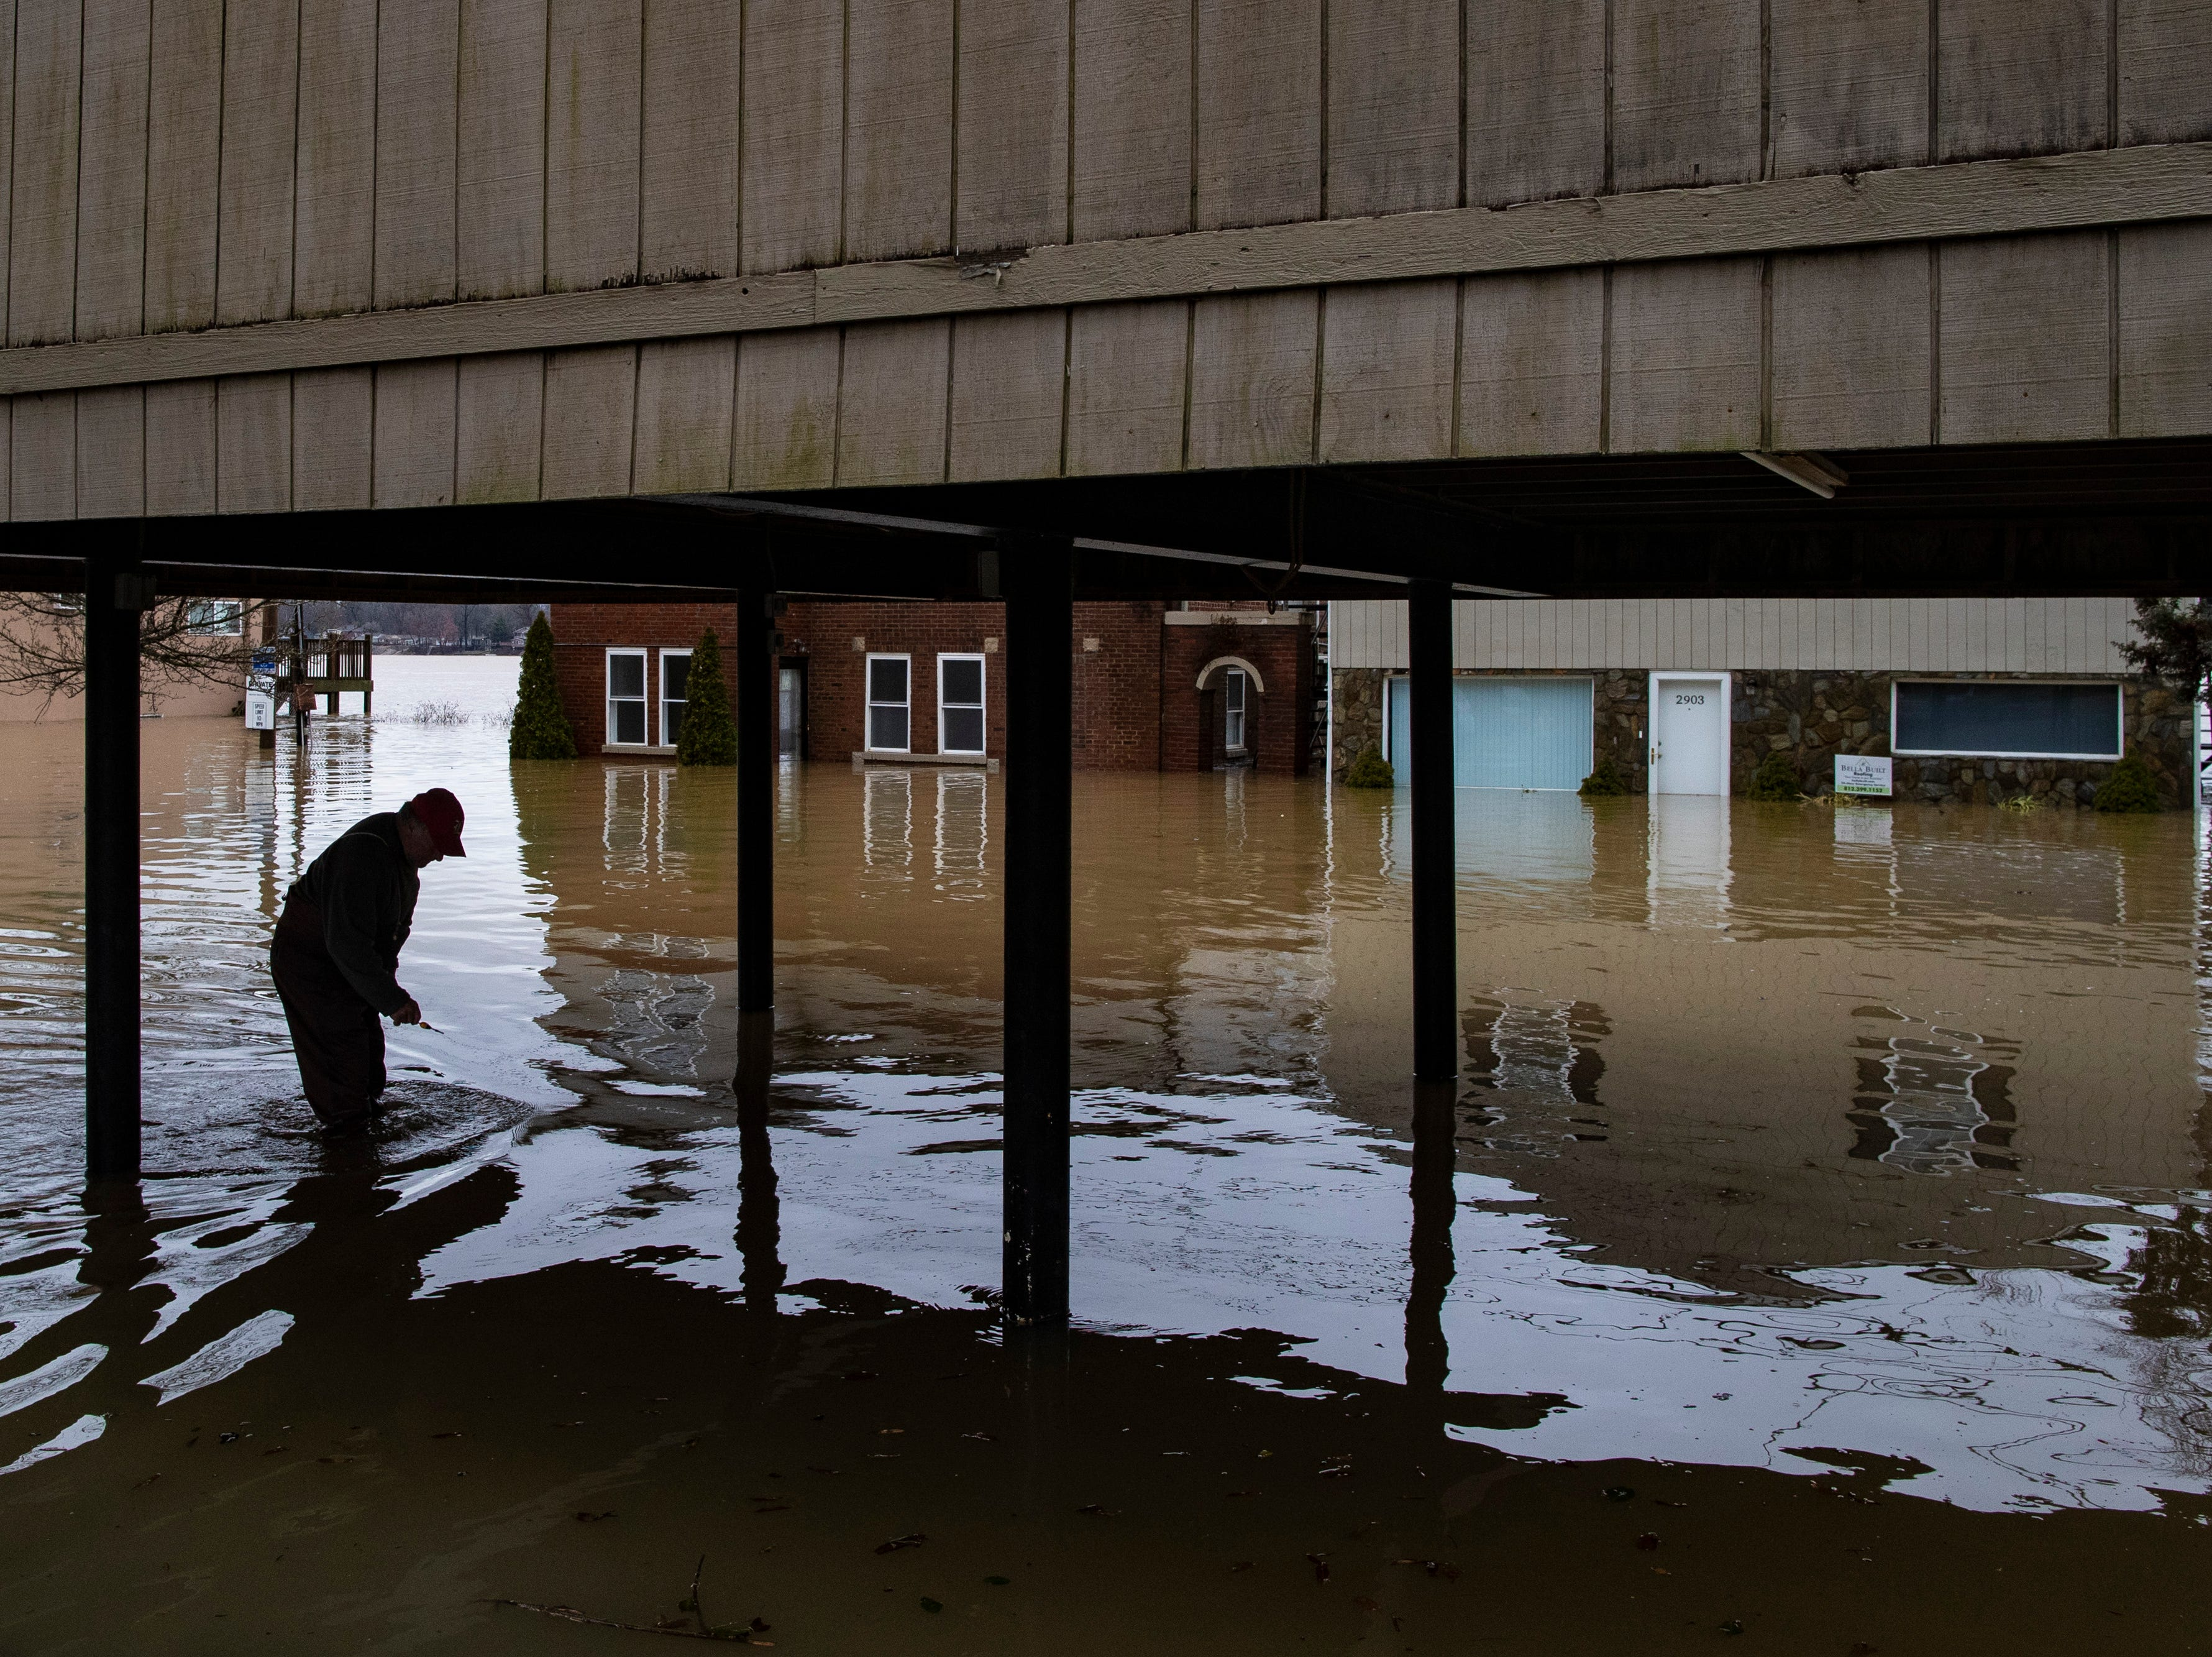 """Tony Kerger, 78, makes his way through high waters to his home off River Road as high waters on the Ohio River rose Tuesday. """"We've lived here 44 years,"""" Kerger said. """"Everybod about had their house put back together from last year and now we'll be doing it again."""" Feb. 12, 2019"""